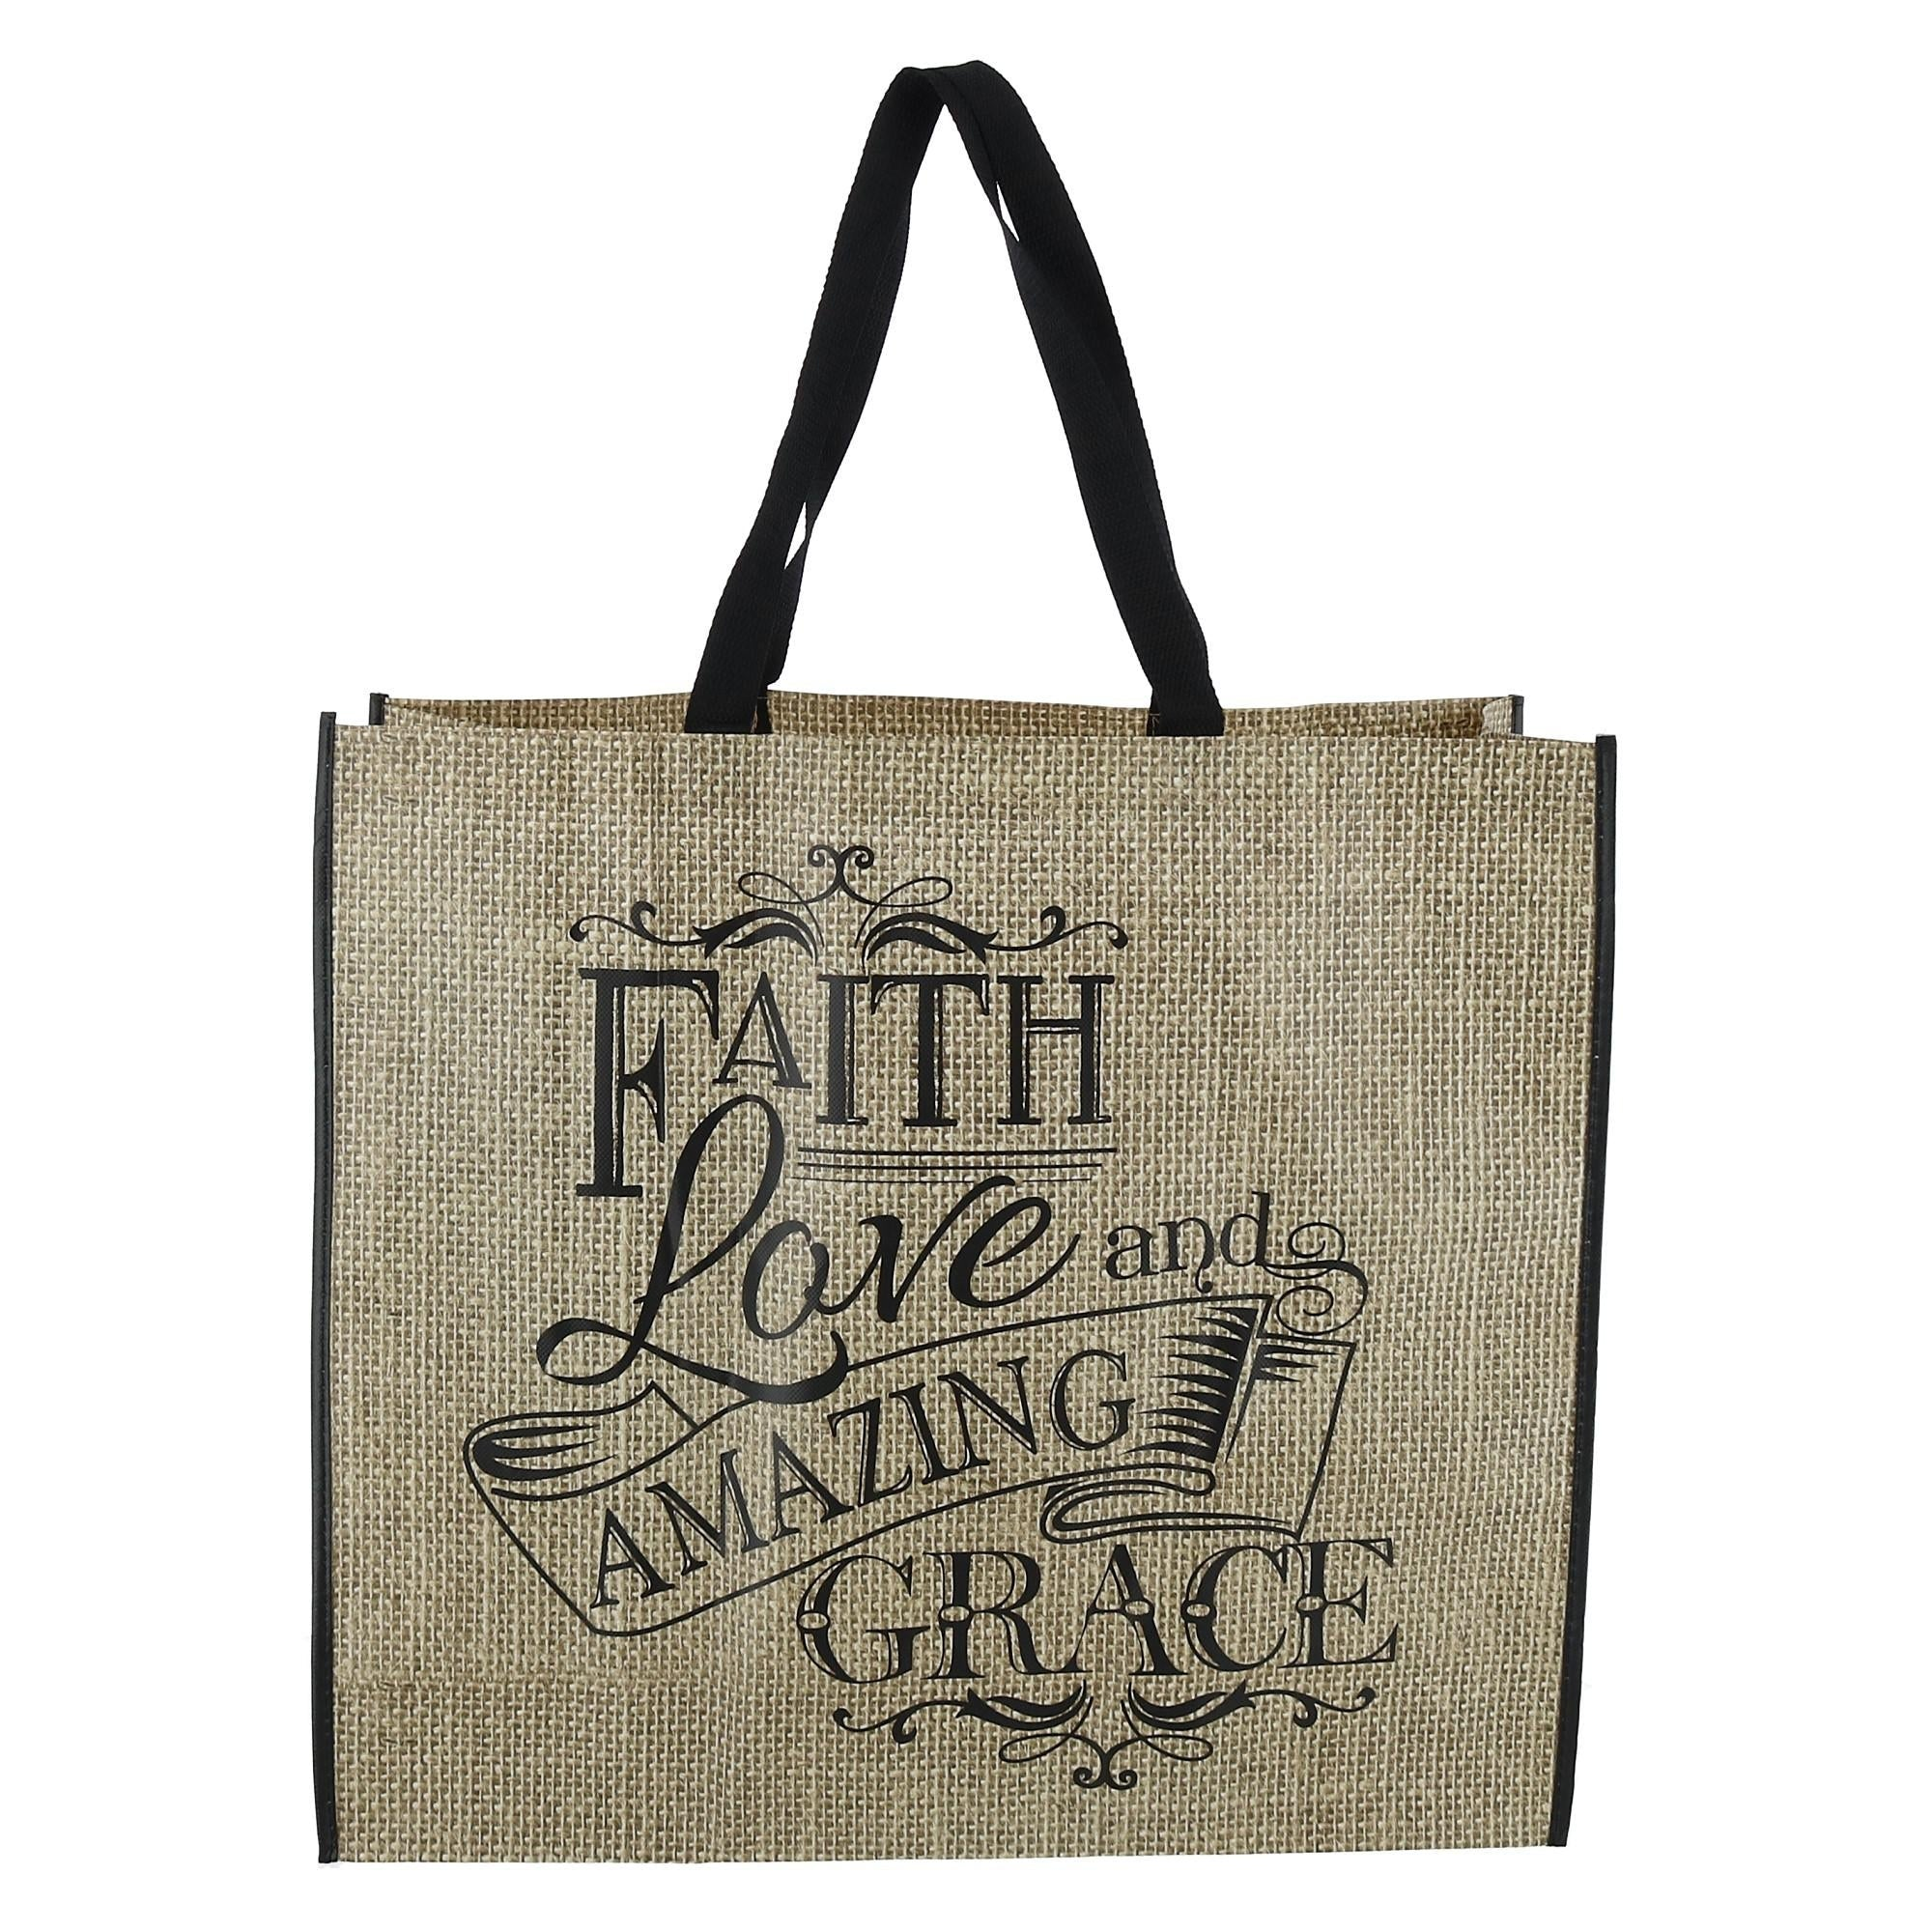 ROCKONLINE | New Creation Church | NCC | Joseph Prince | ROCK Bookshop | ROCK Bookstore | Star Vista | Tote Bag | Shopping Bag | Gift Bag | Eco-friendly | Grocery | Errands | Shopping | Jumbo Tote Bag | Christian Gifts | Free delivery for Singapore Orders above $50.